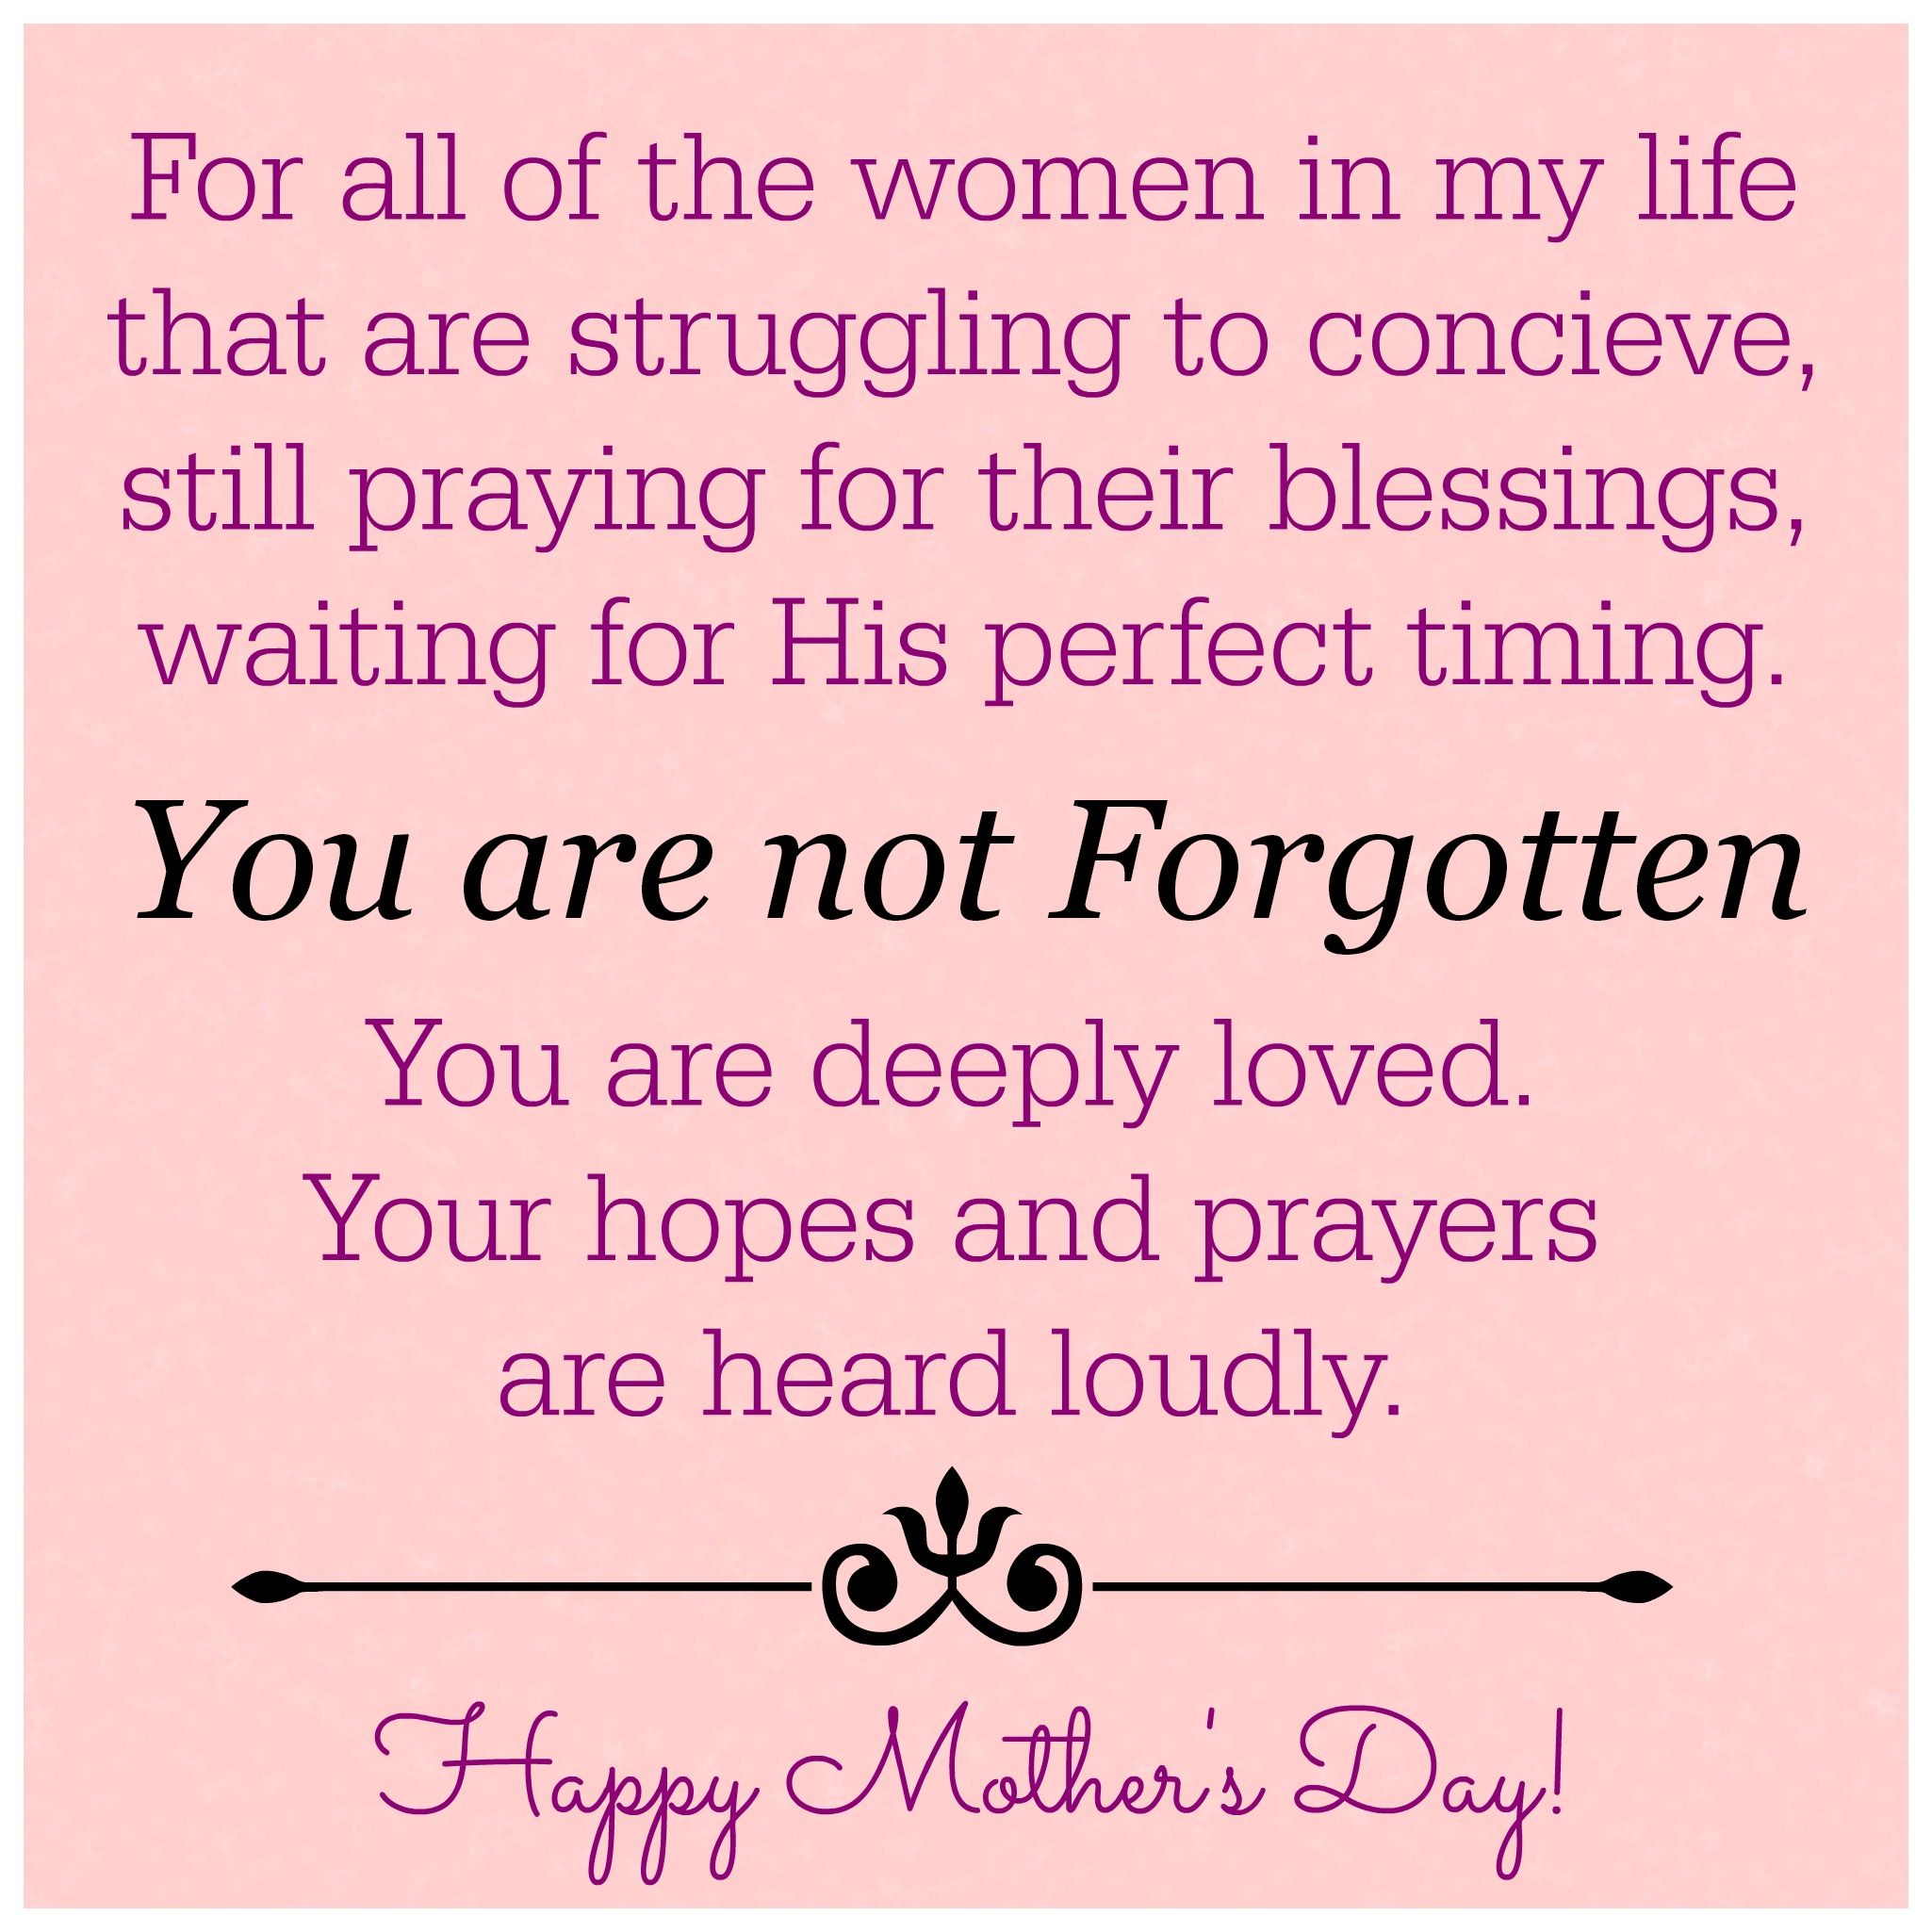 Happy Mother's Day. HappyMothersDayInfertility